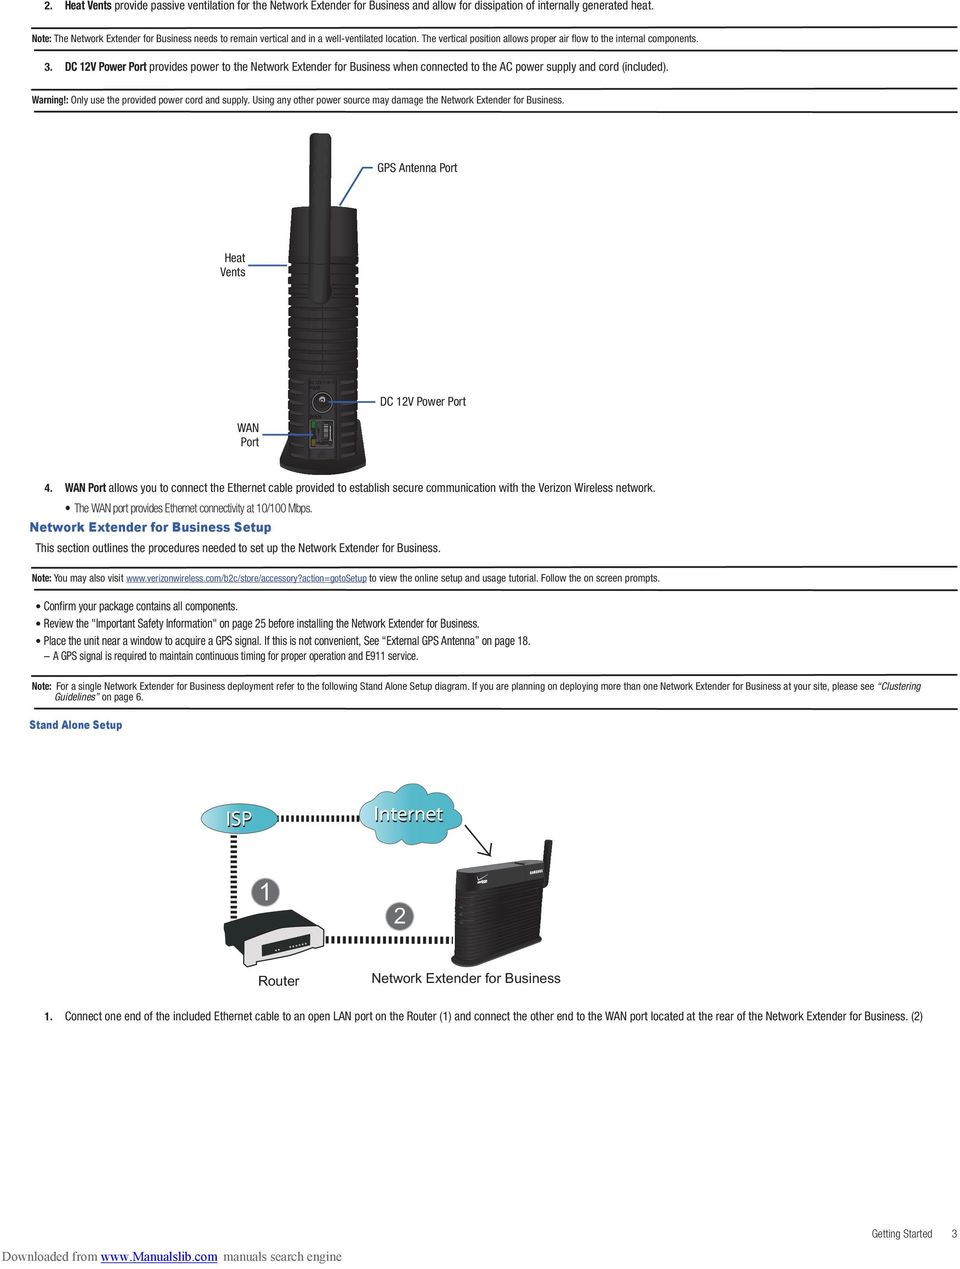 Verizon Wireless Network Extender For Business User Manual Please Home Diagram Dc 12v Power Port Provides To The When Connected